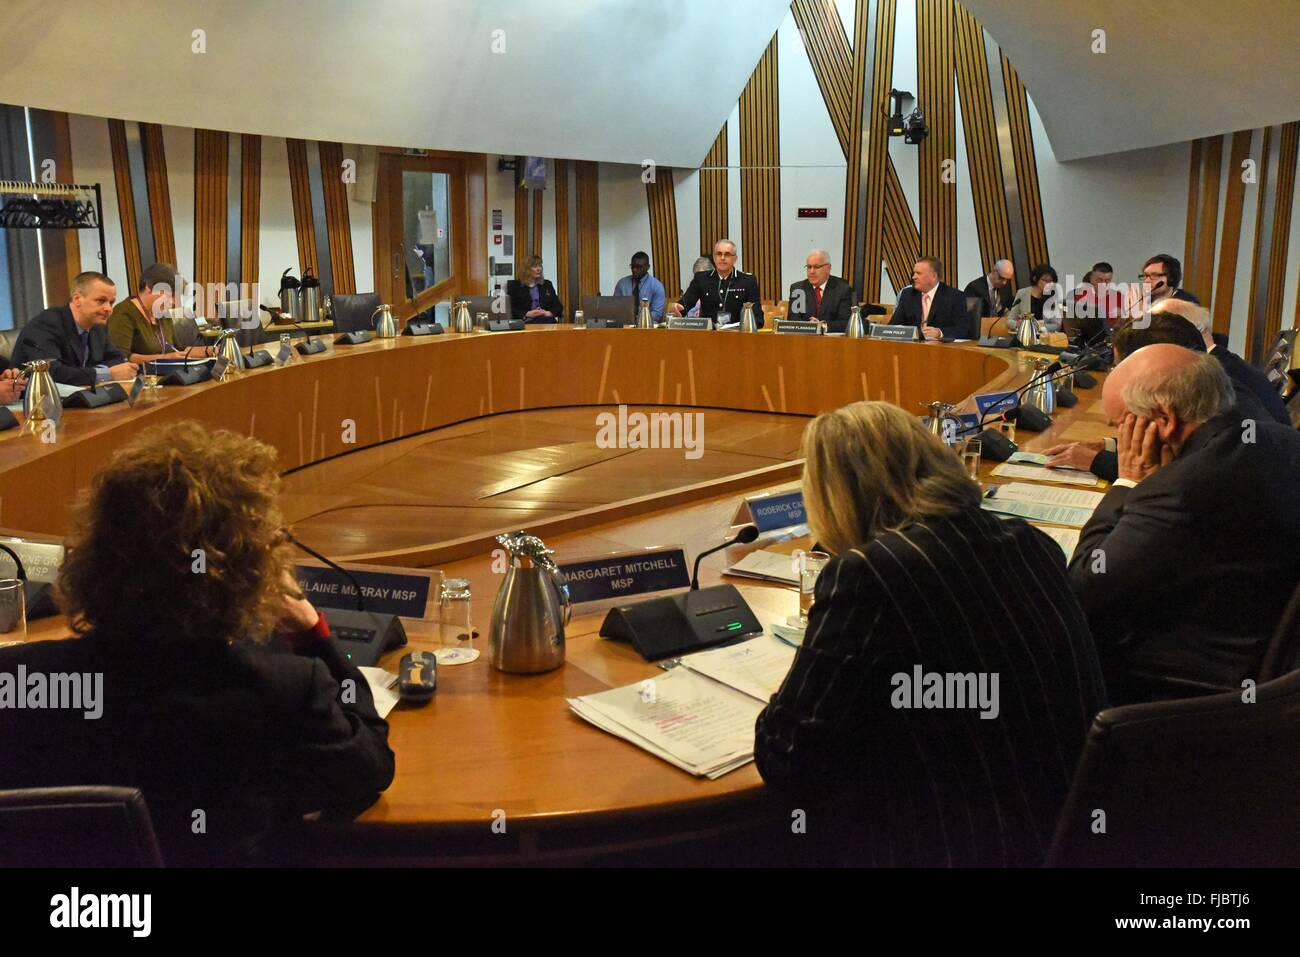 Edinburgh, Scotland, 1st March, 2016. The Justice Committee of the Scottish Parliament takes evidence from the Chief - Stock Image